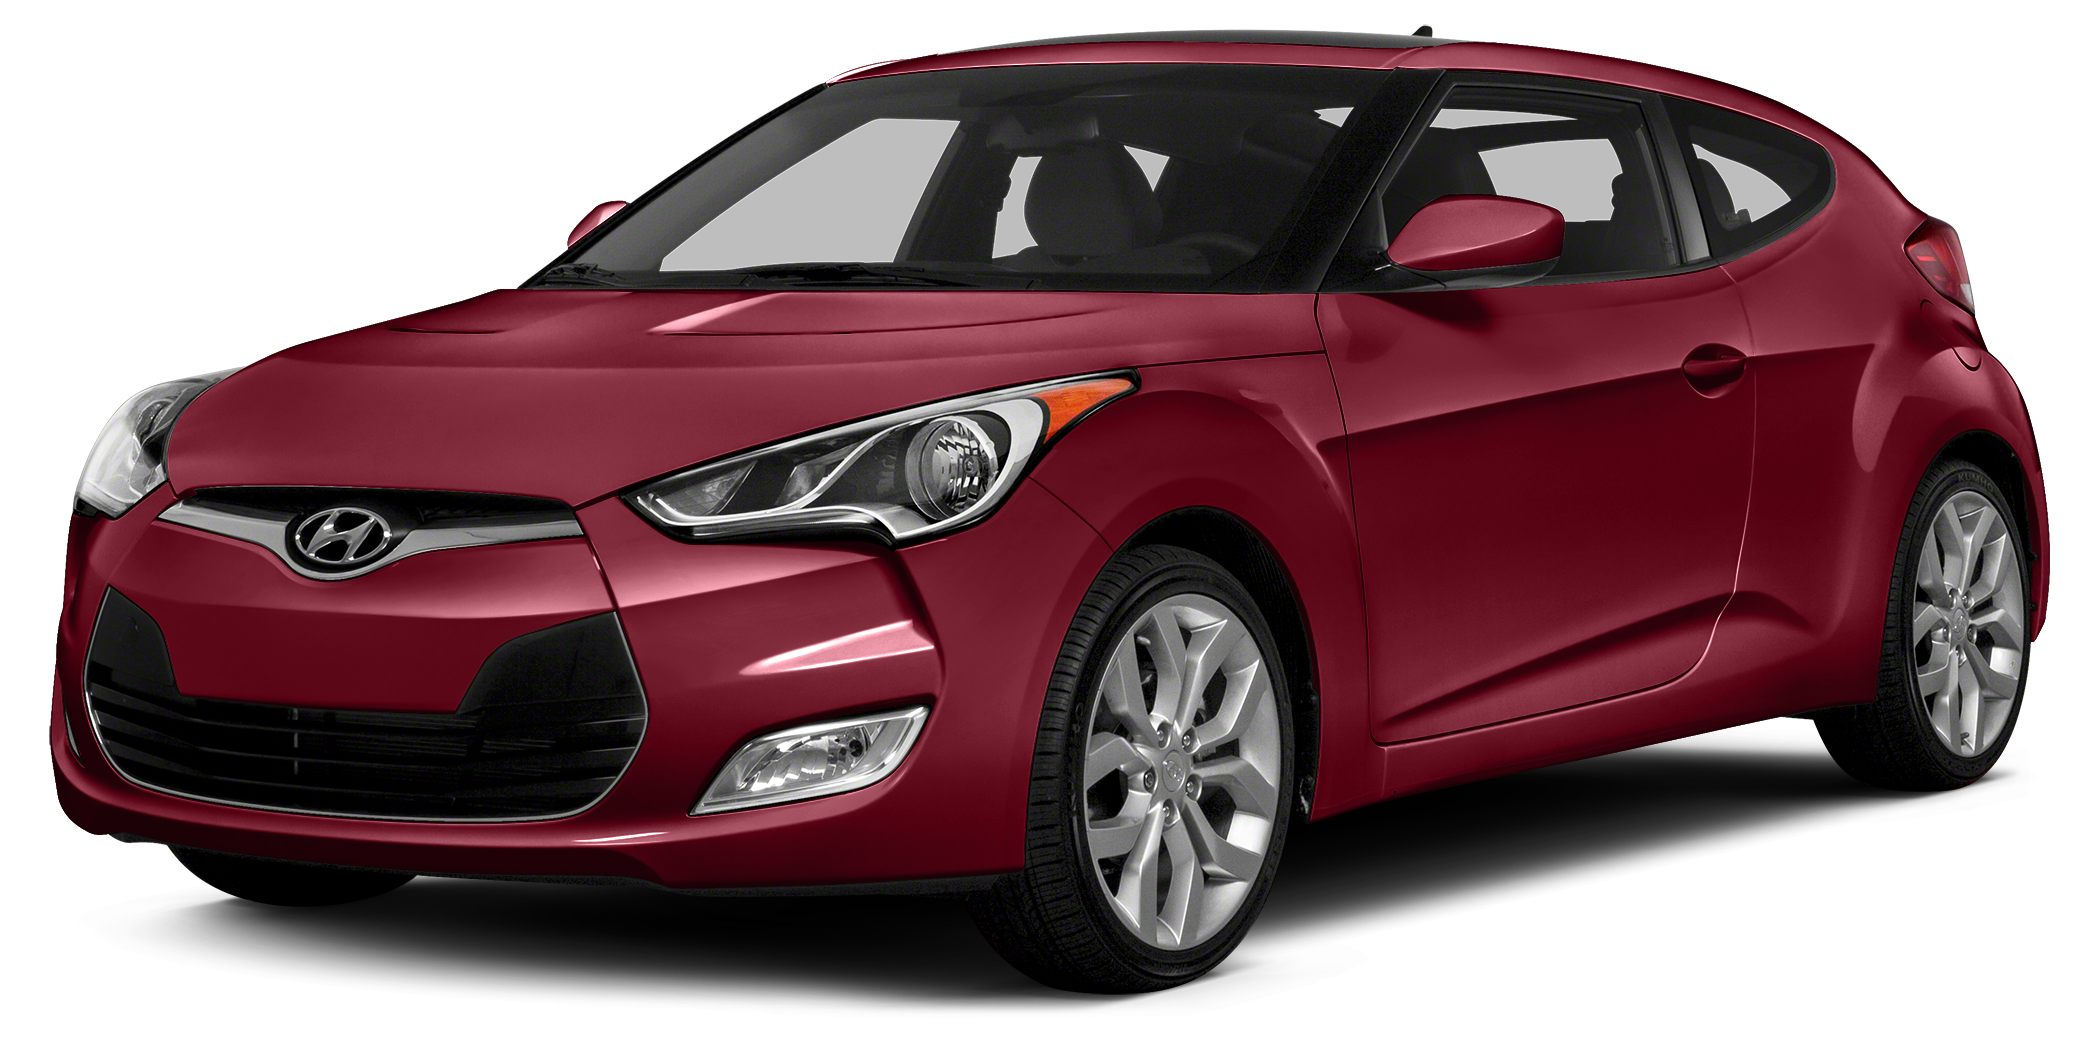 2013 Hyundai Veloster Base wGray USB Port MP3- USB  I-Pod Ready ONE OWNER Clean Carfax N